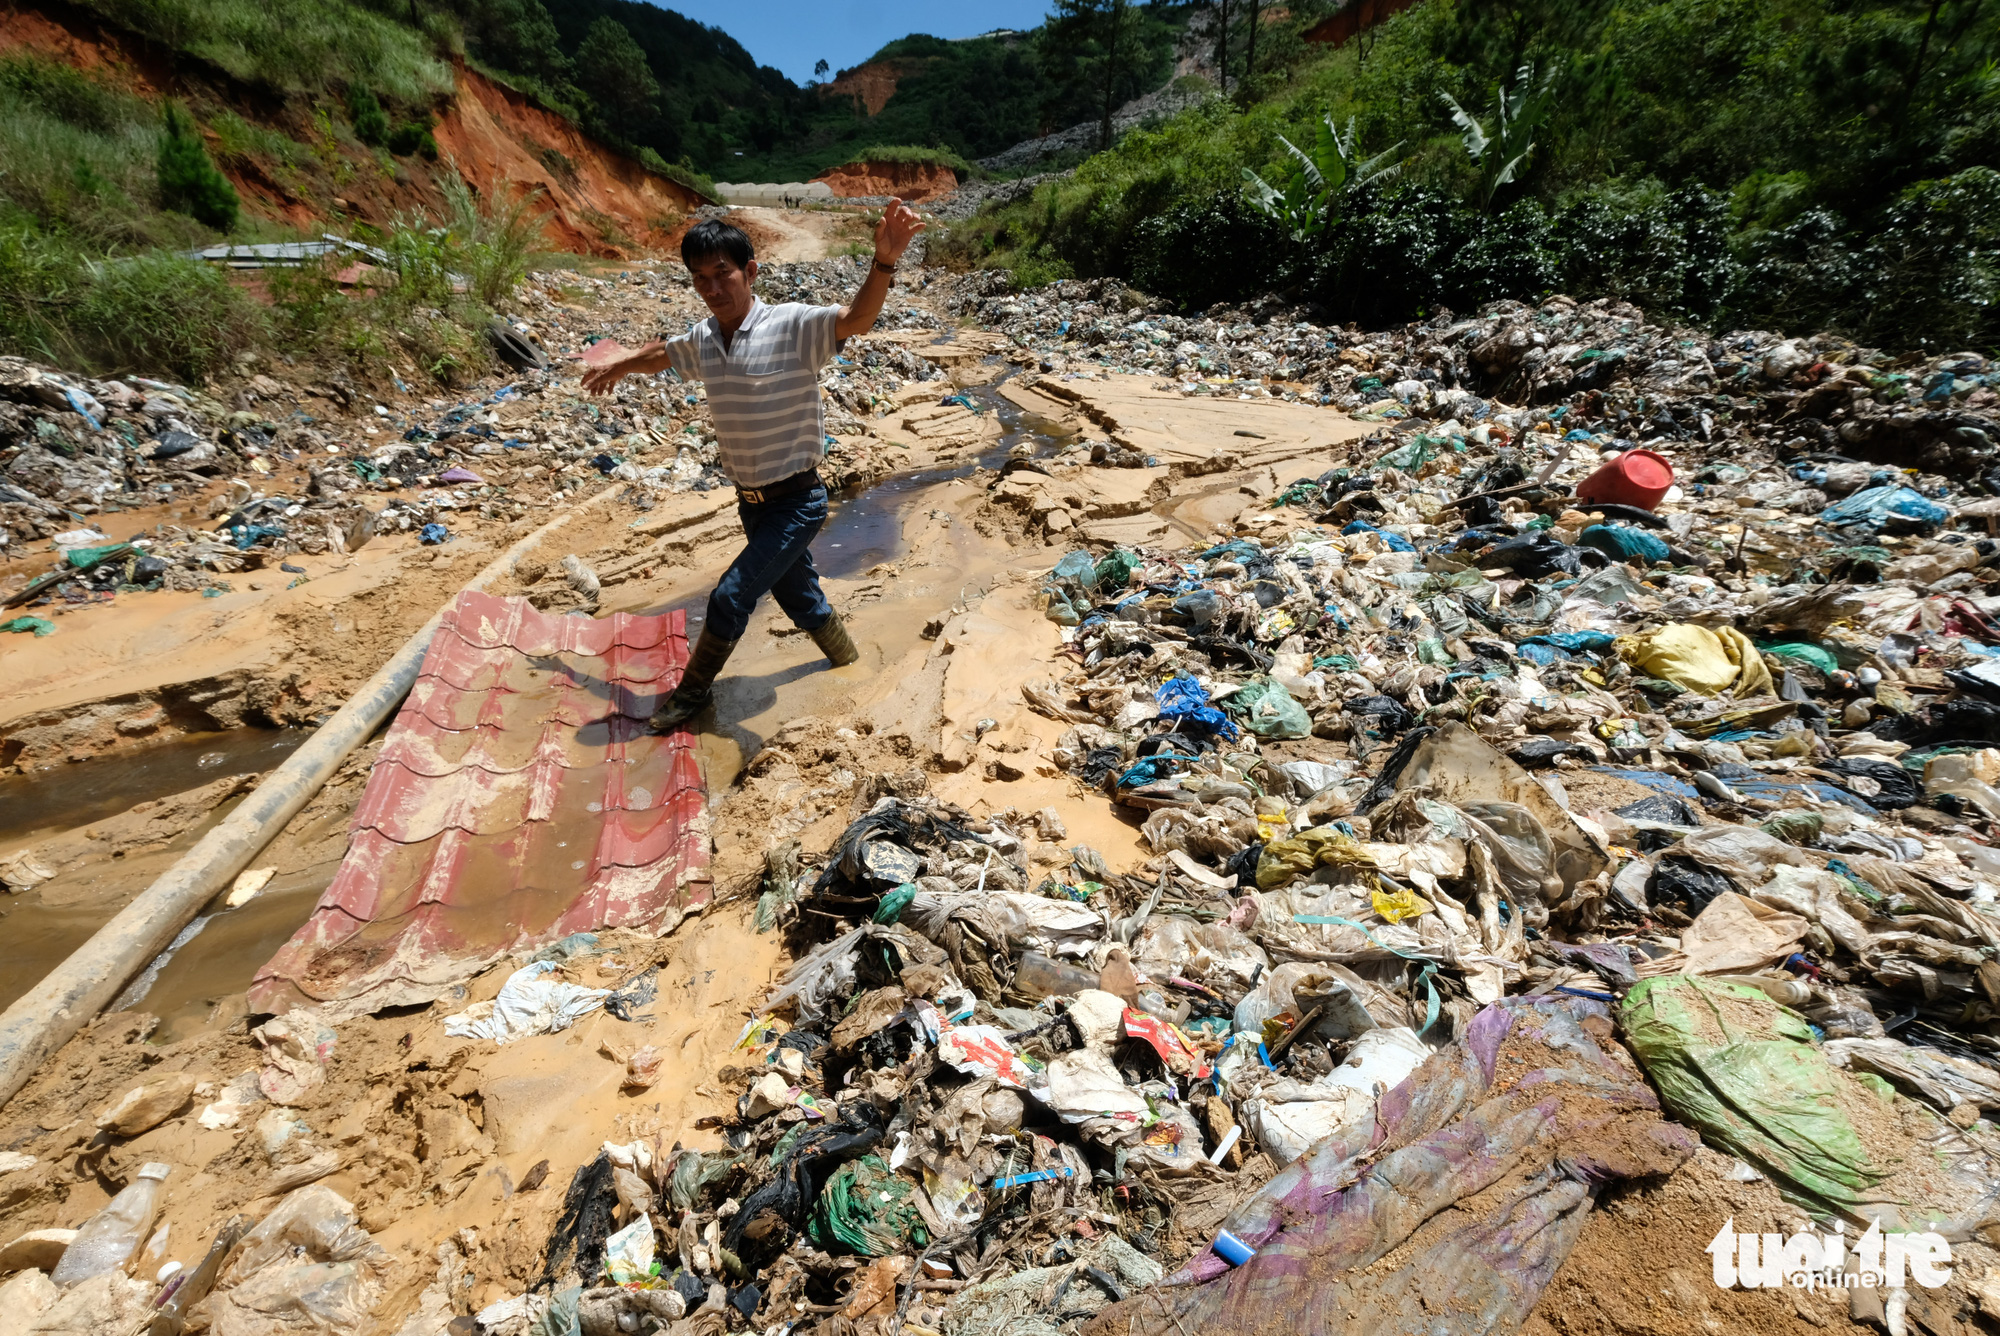 A man walks in what used to be a stream that has given way to tons of trash from the Cam Ly landfill in Da Lat City, Lam Dong Province in the Central Highlands region of Vietnam. Photo: M.Vinh / Tuoi Tre